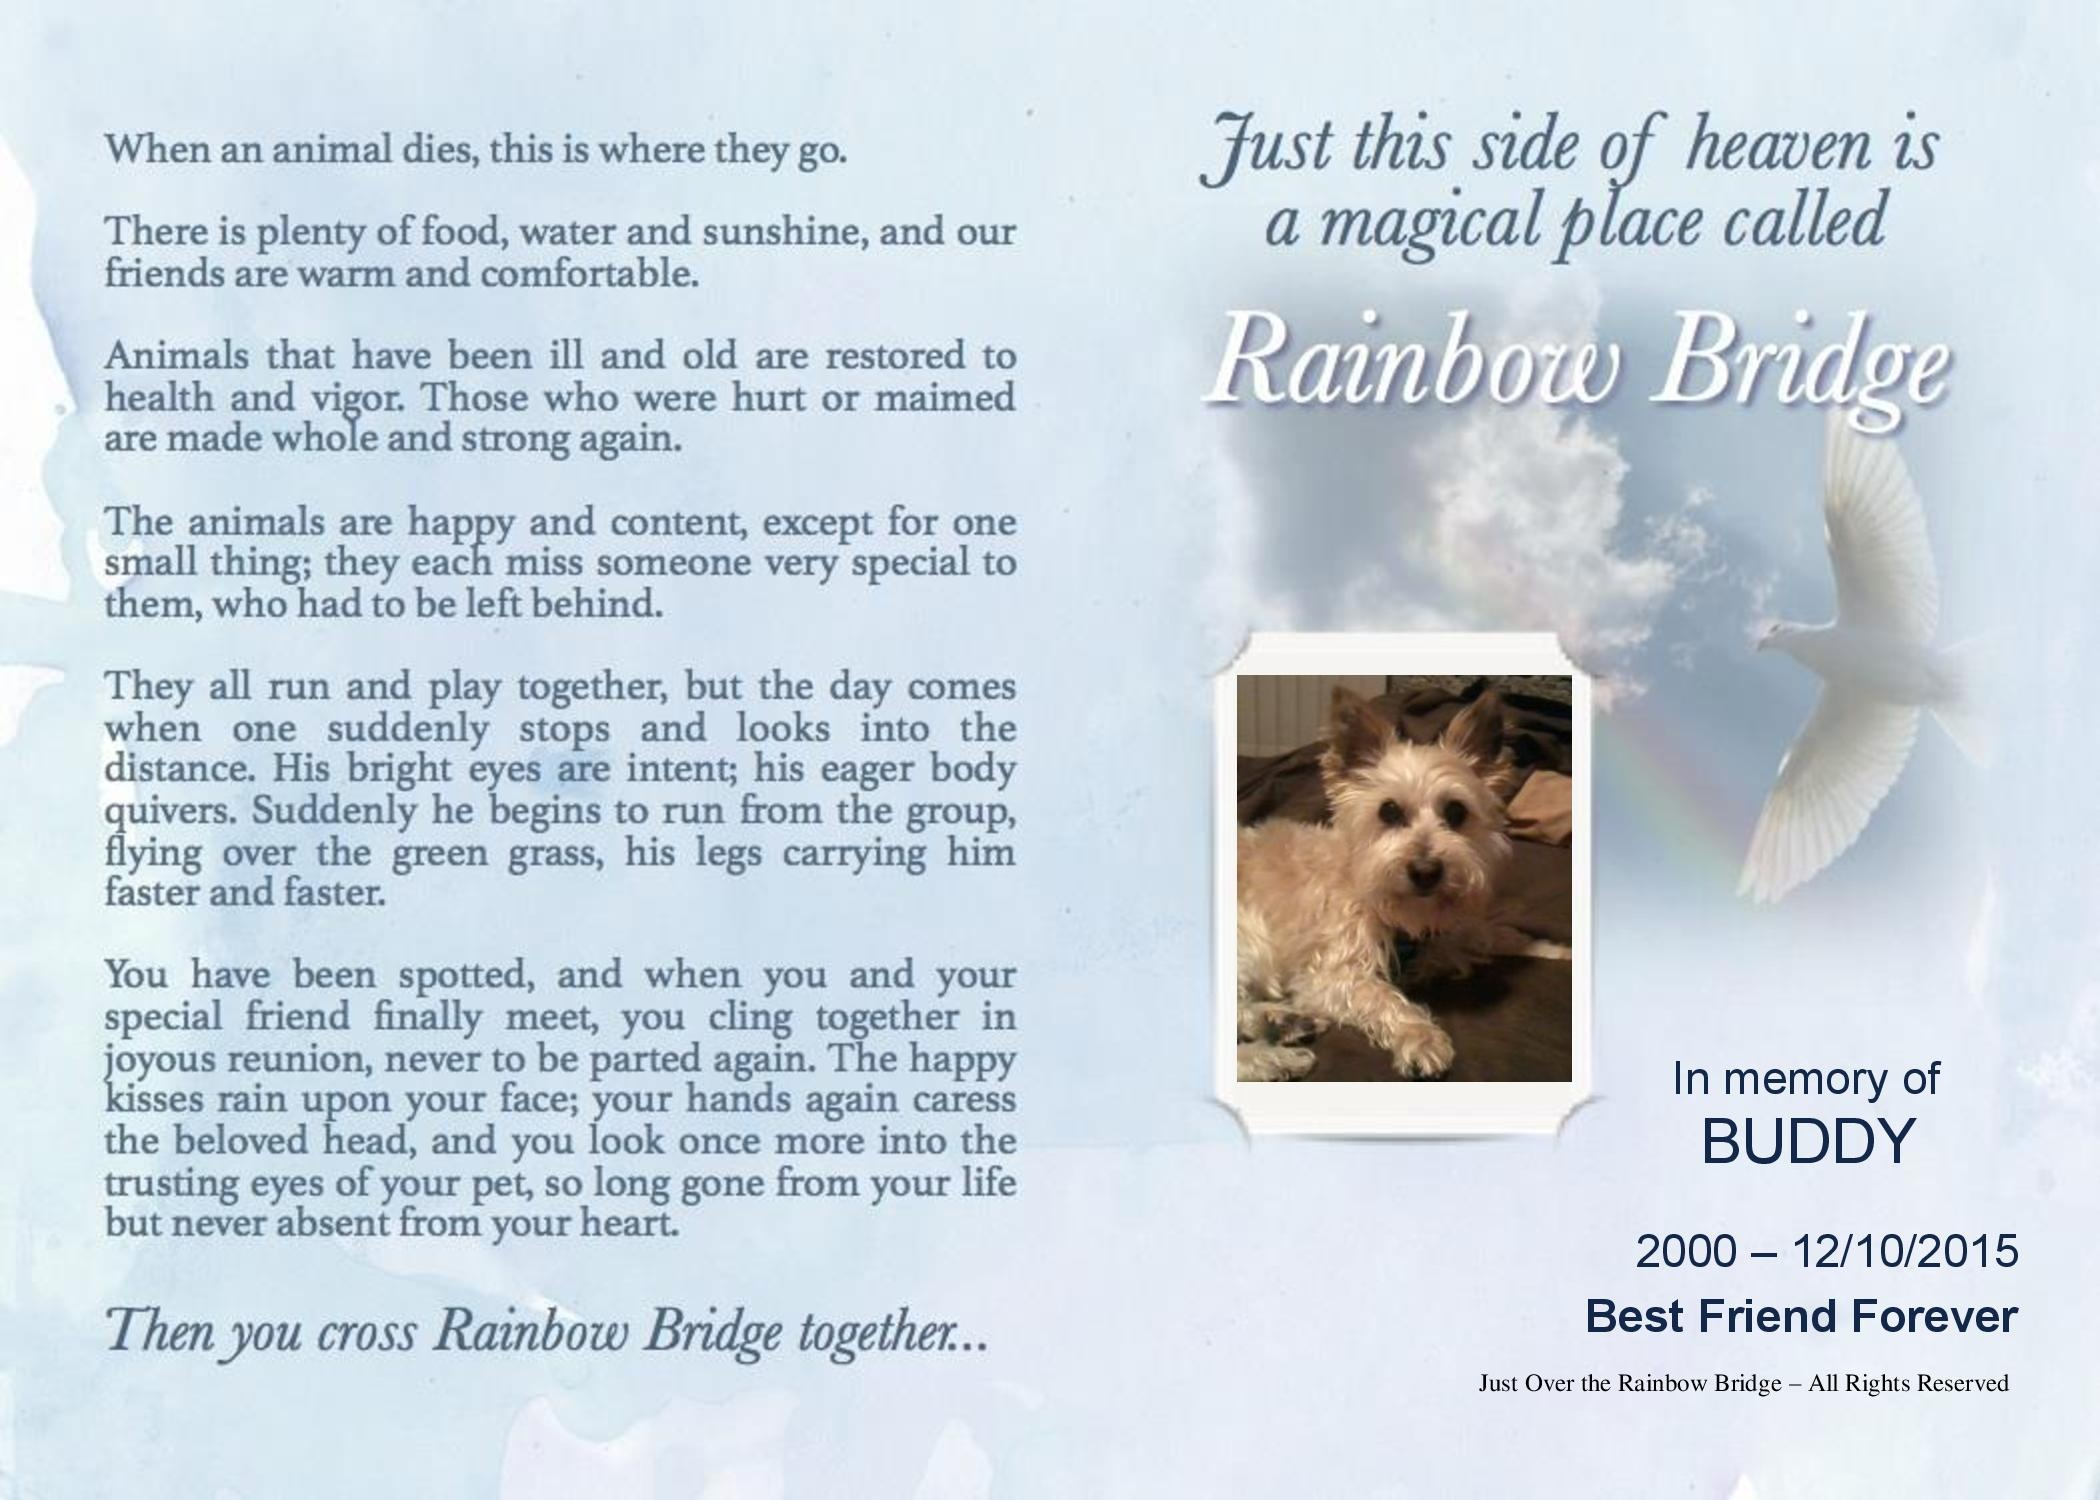 Just Over The Rainbow Bridge1-4248Yeager, David - Buddy - Approved- PDF converted to high resolution jpg.jpg455